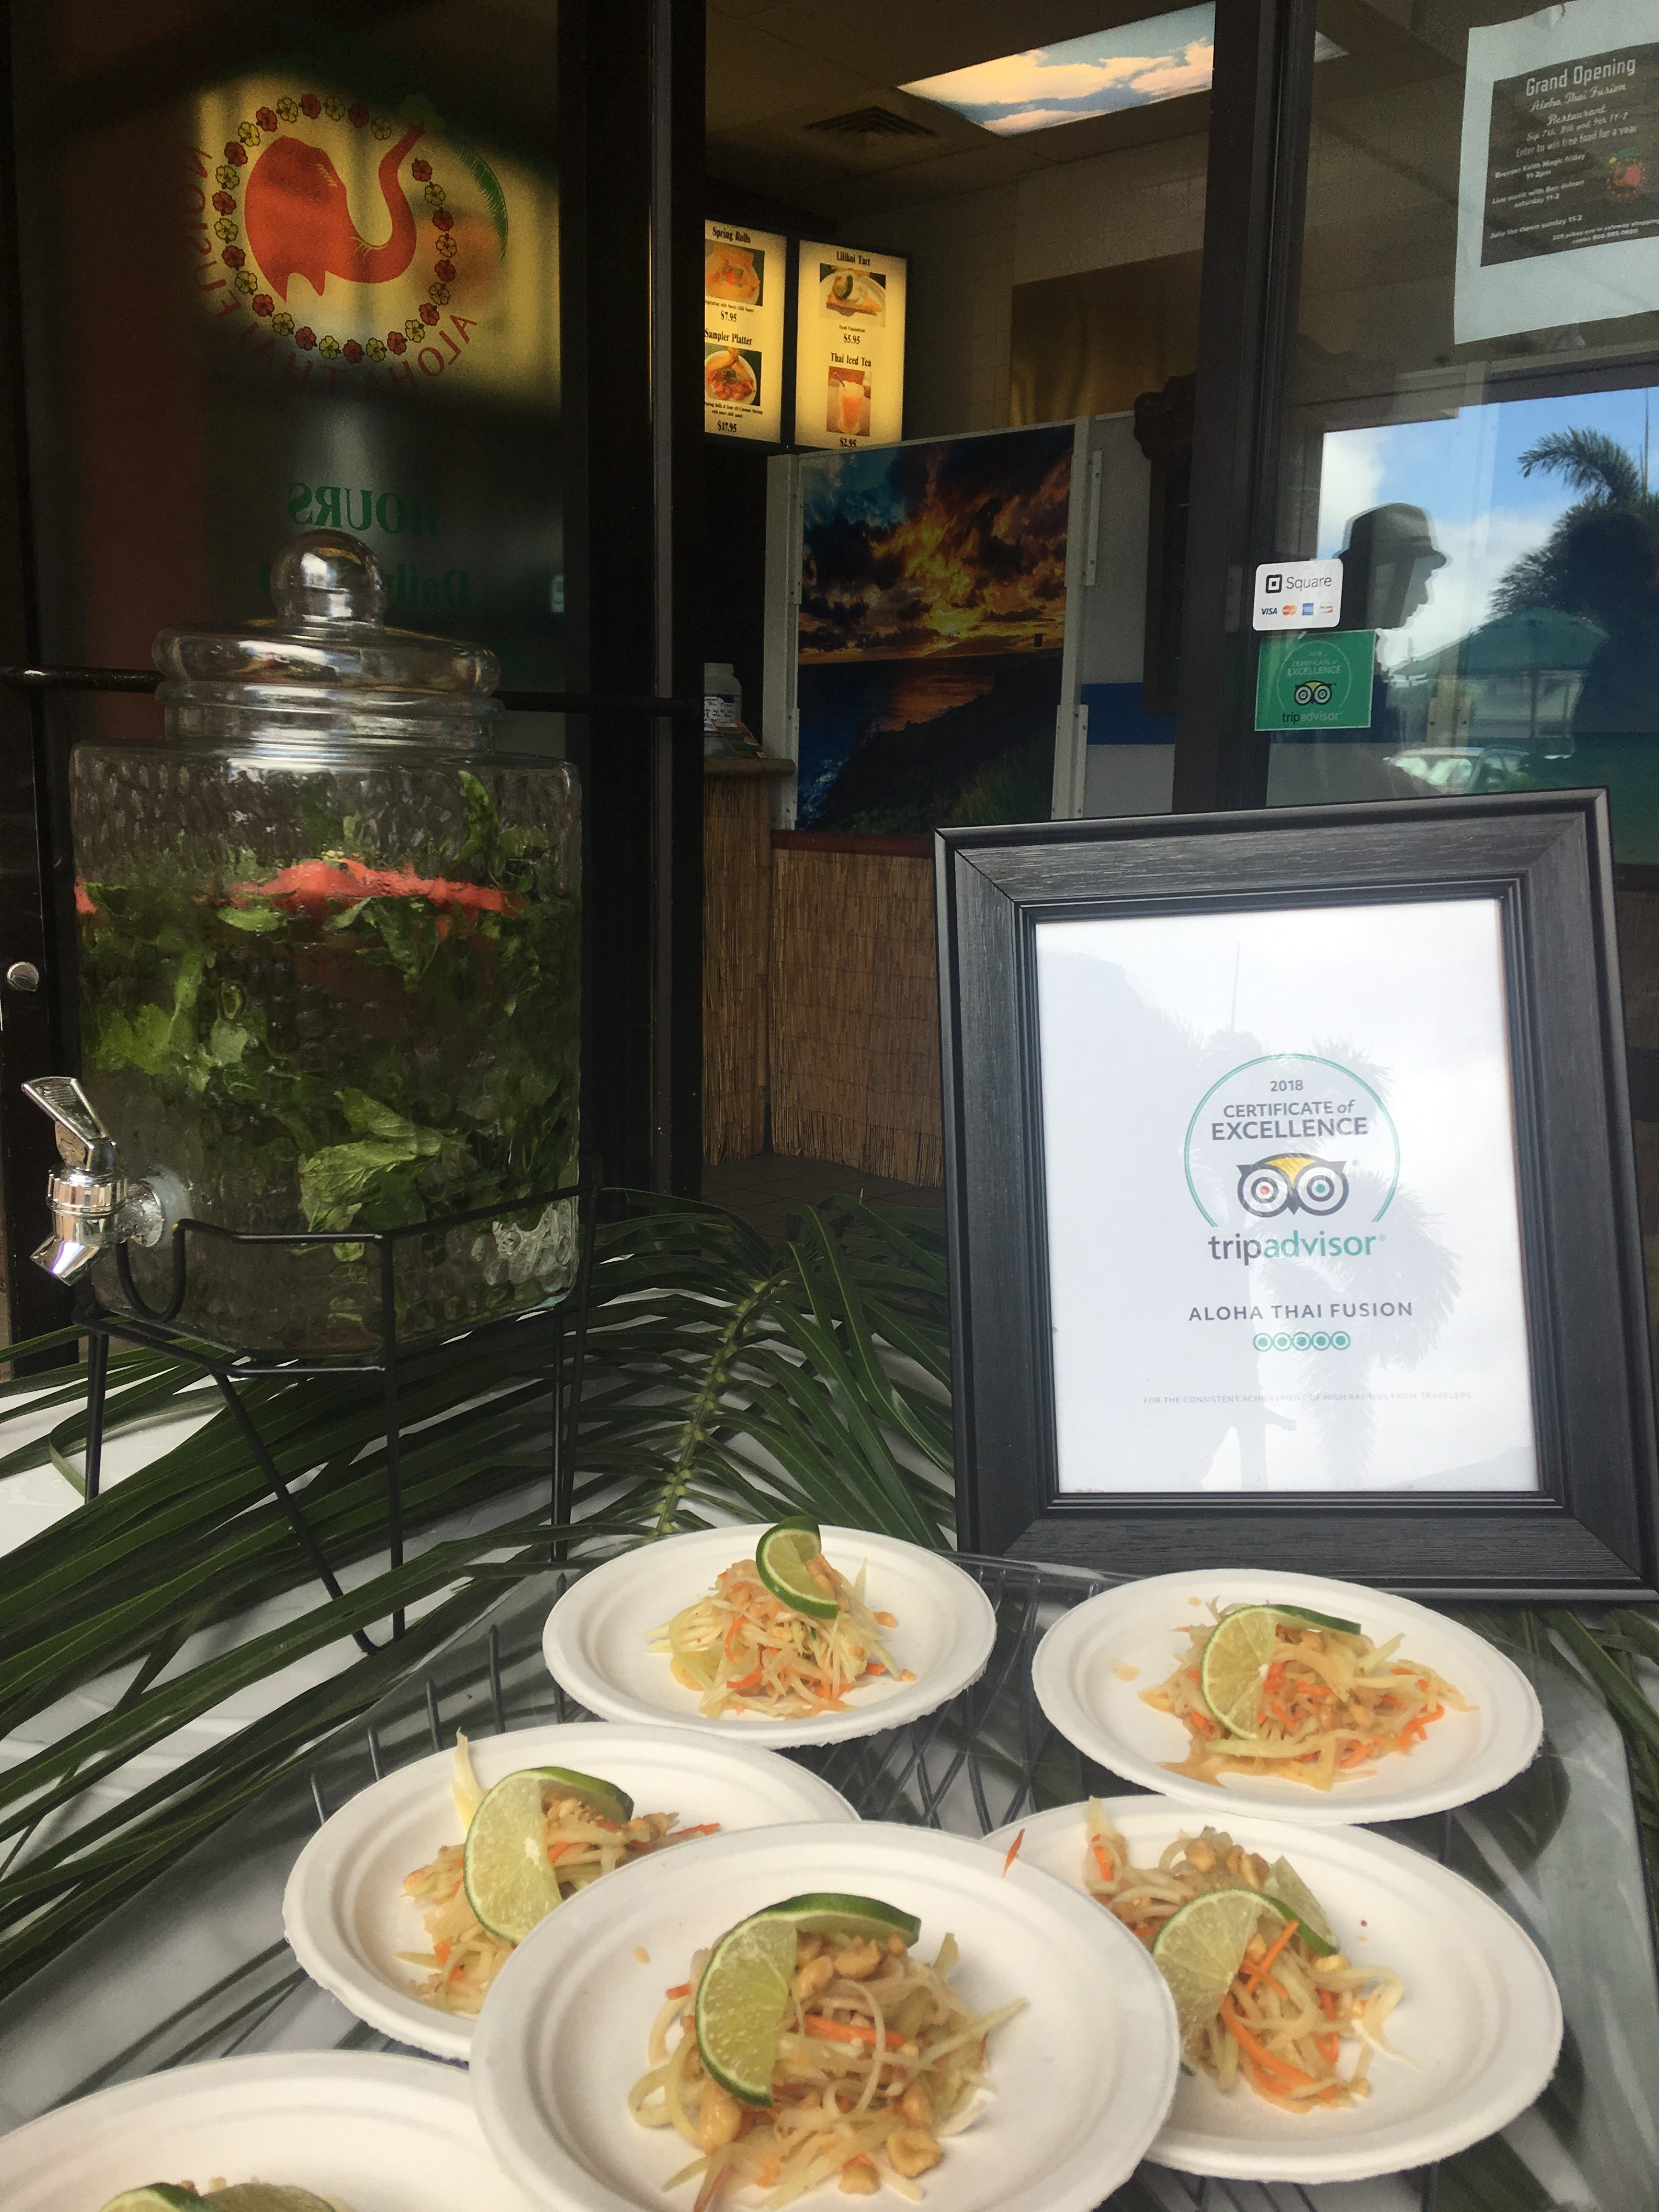 Aloha Thai Fusion Celebrates for Three Days